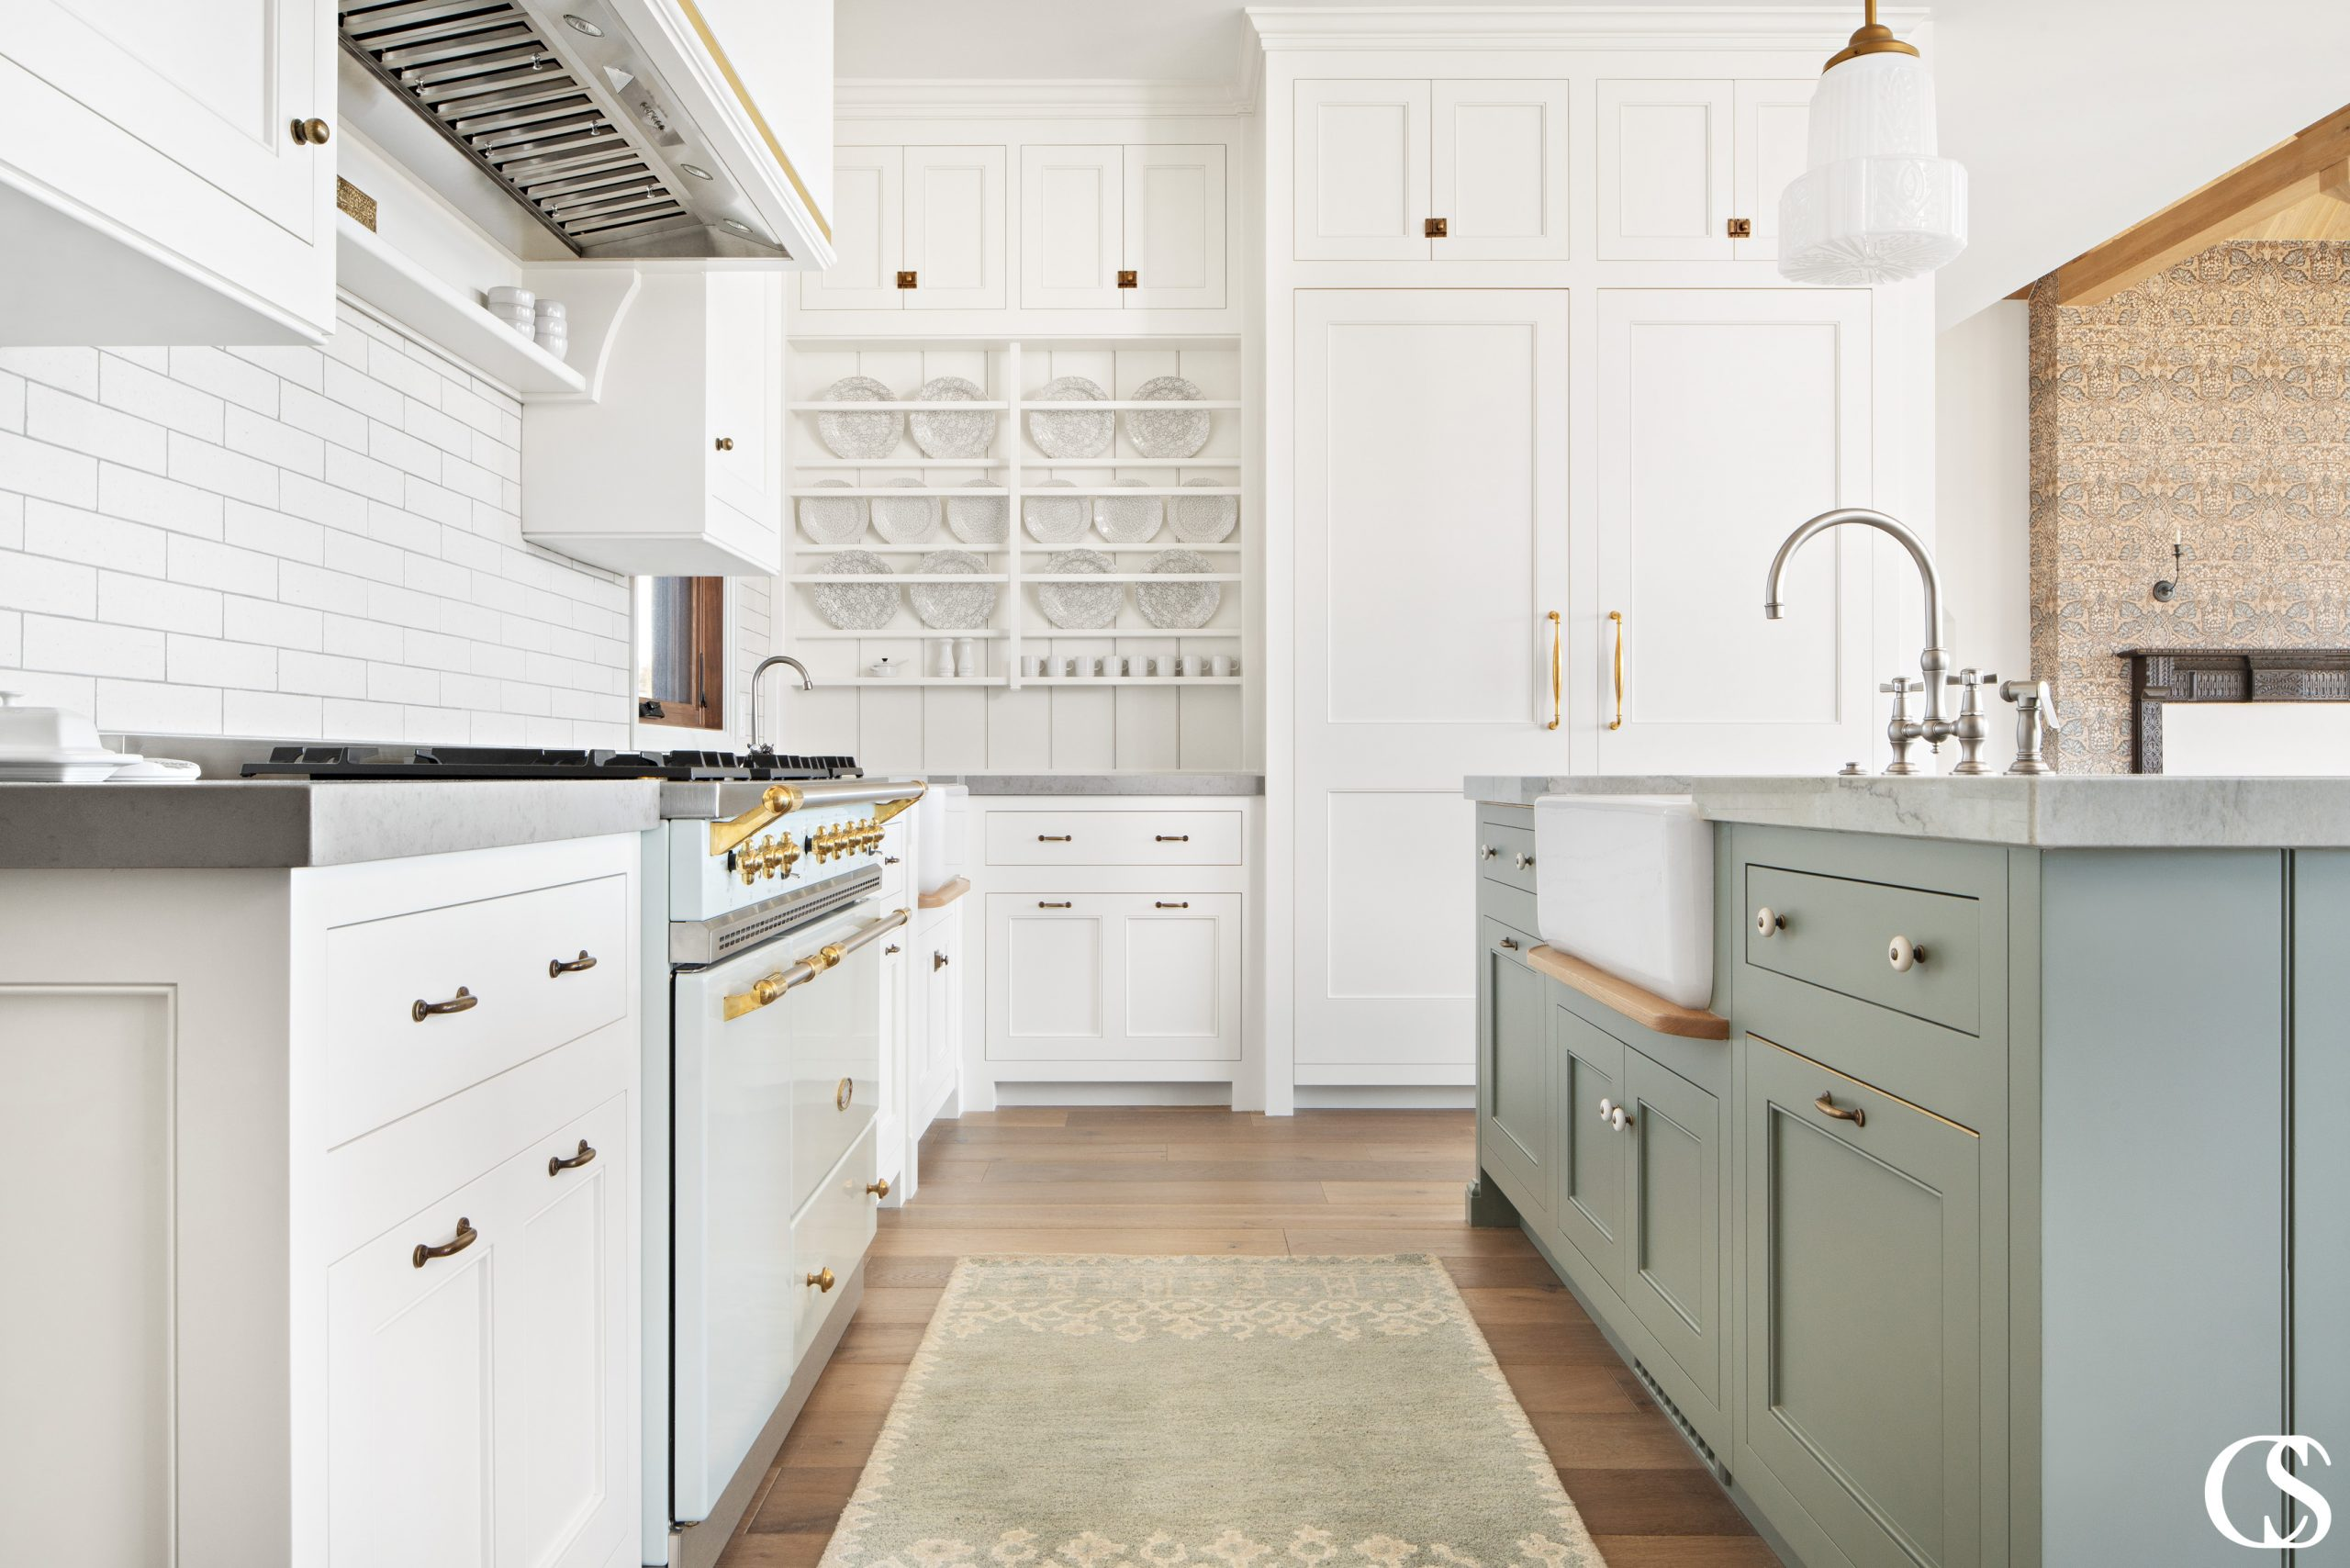 What better way to solidify your farmhouse aesthetic than with custom kitchen cabinets complete with a beautiful farmhouse sink?